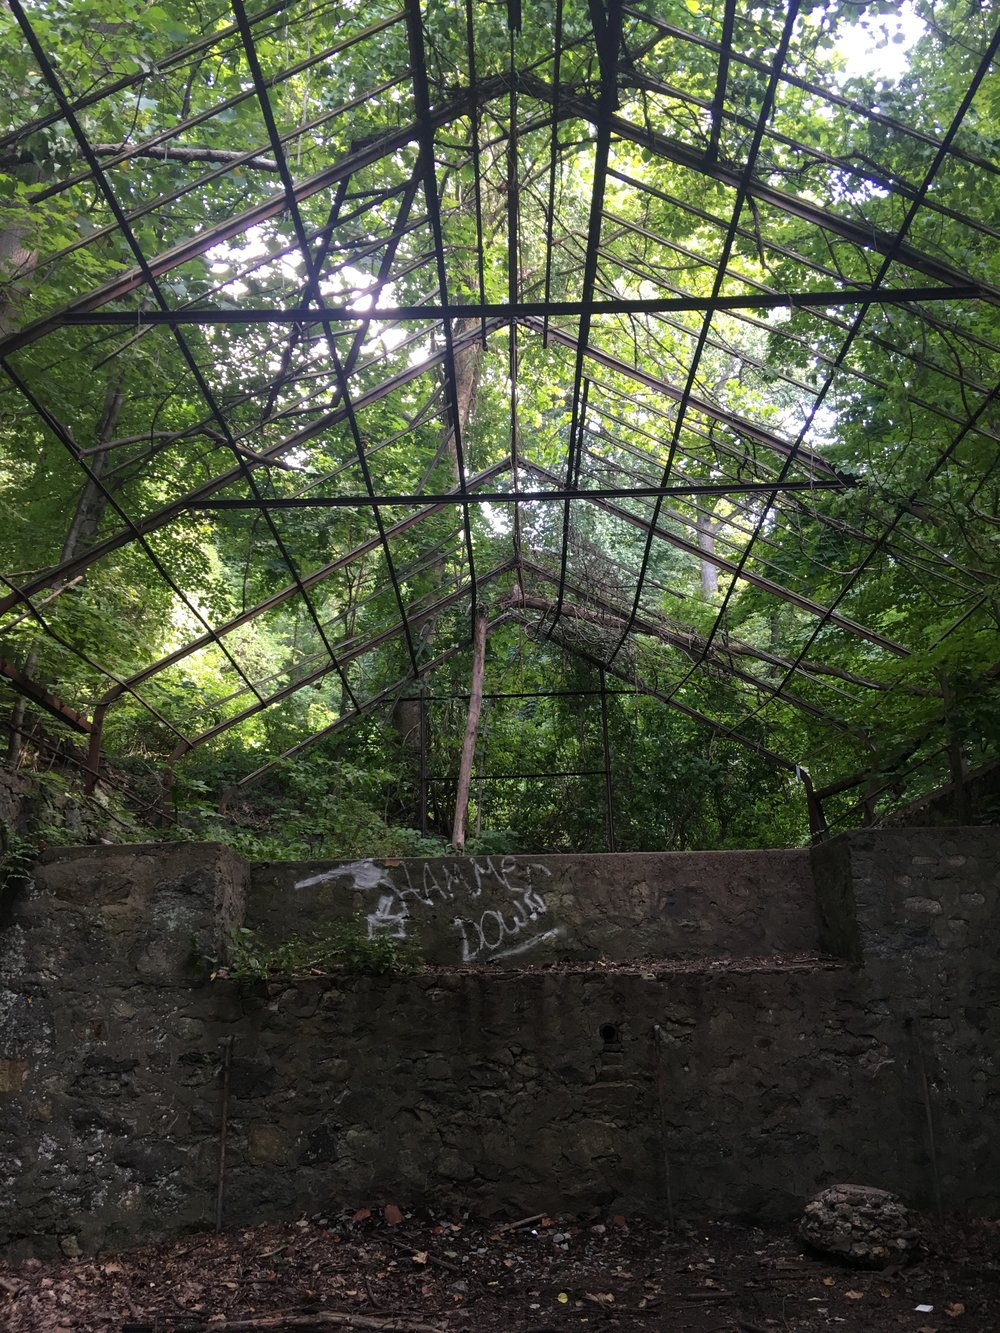 I imagined a roof made of glass, letting in light for gardens that once grew here.